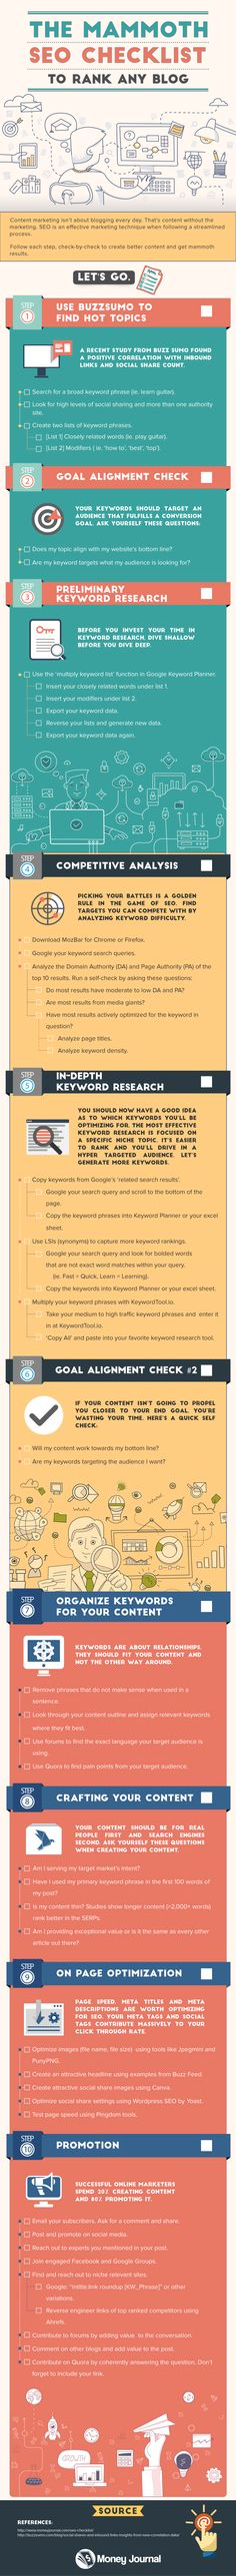 A complete SEO checklist to rank your blog in Google.